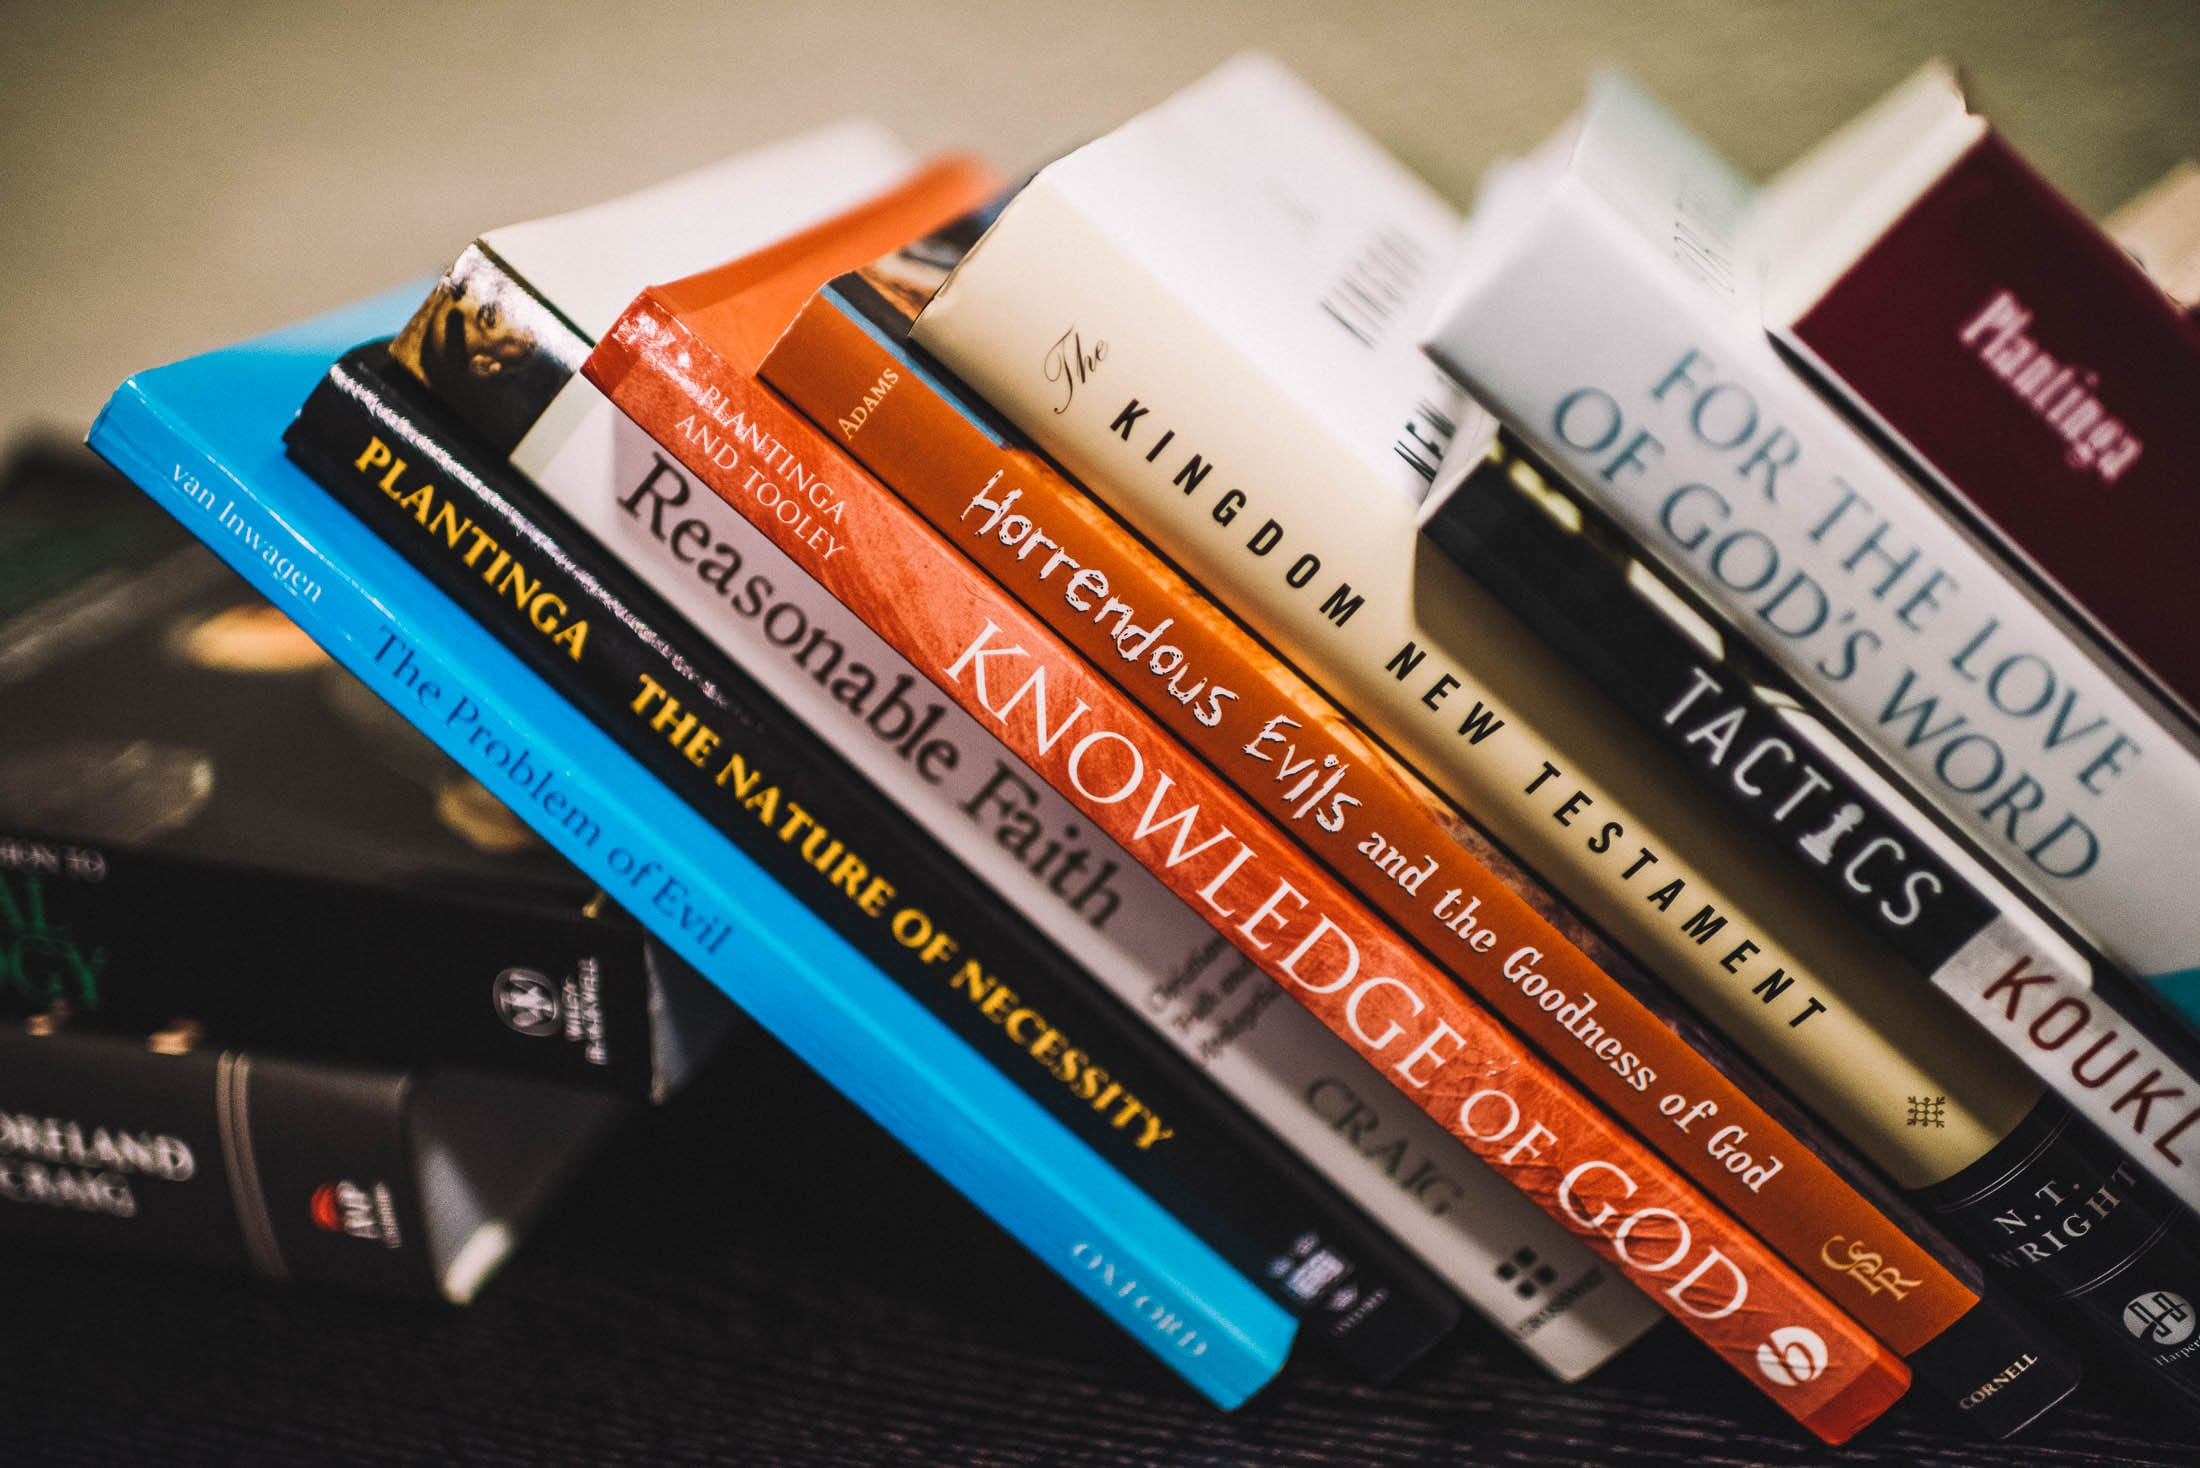 The Top 3 Apologetics Books Christian Philosophers Say You Should